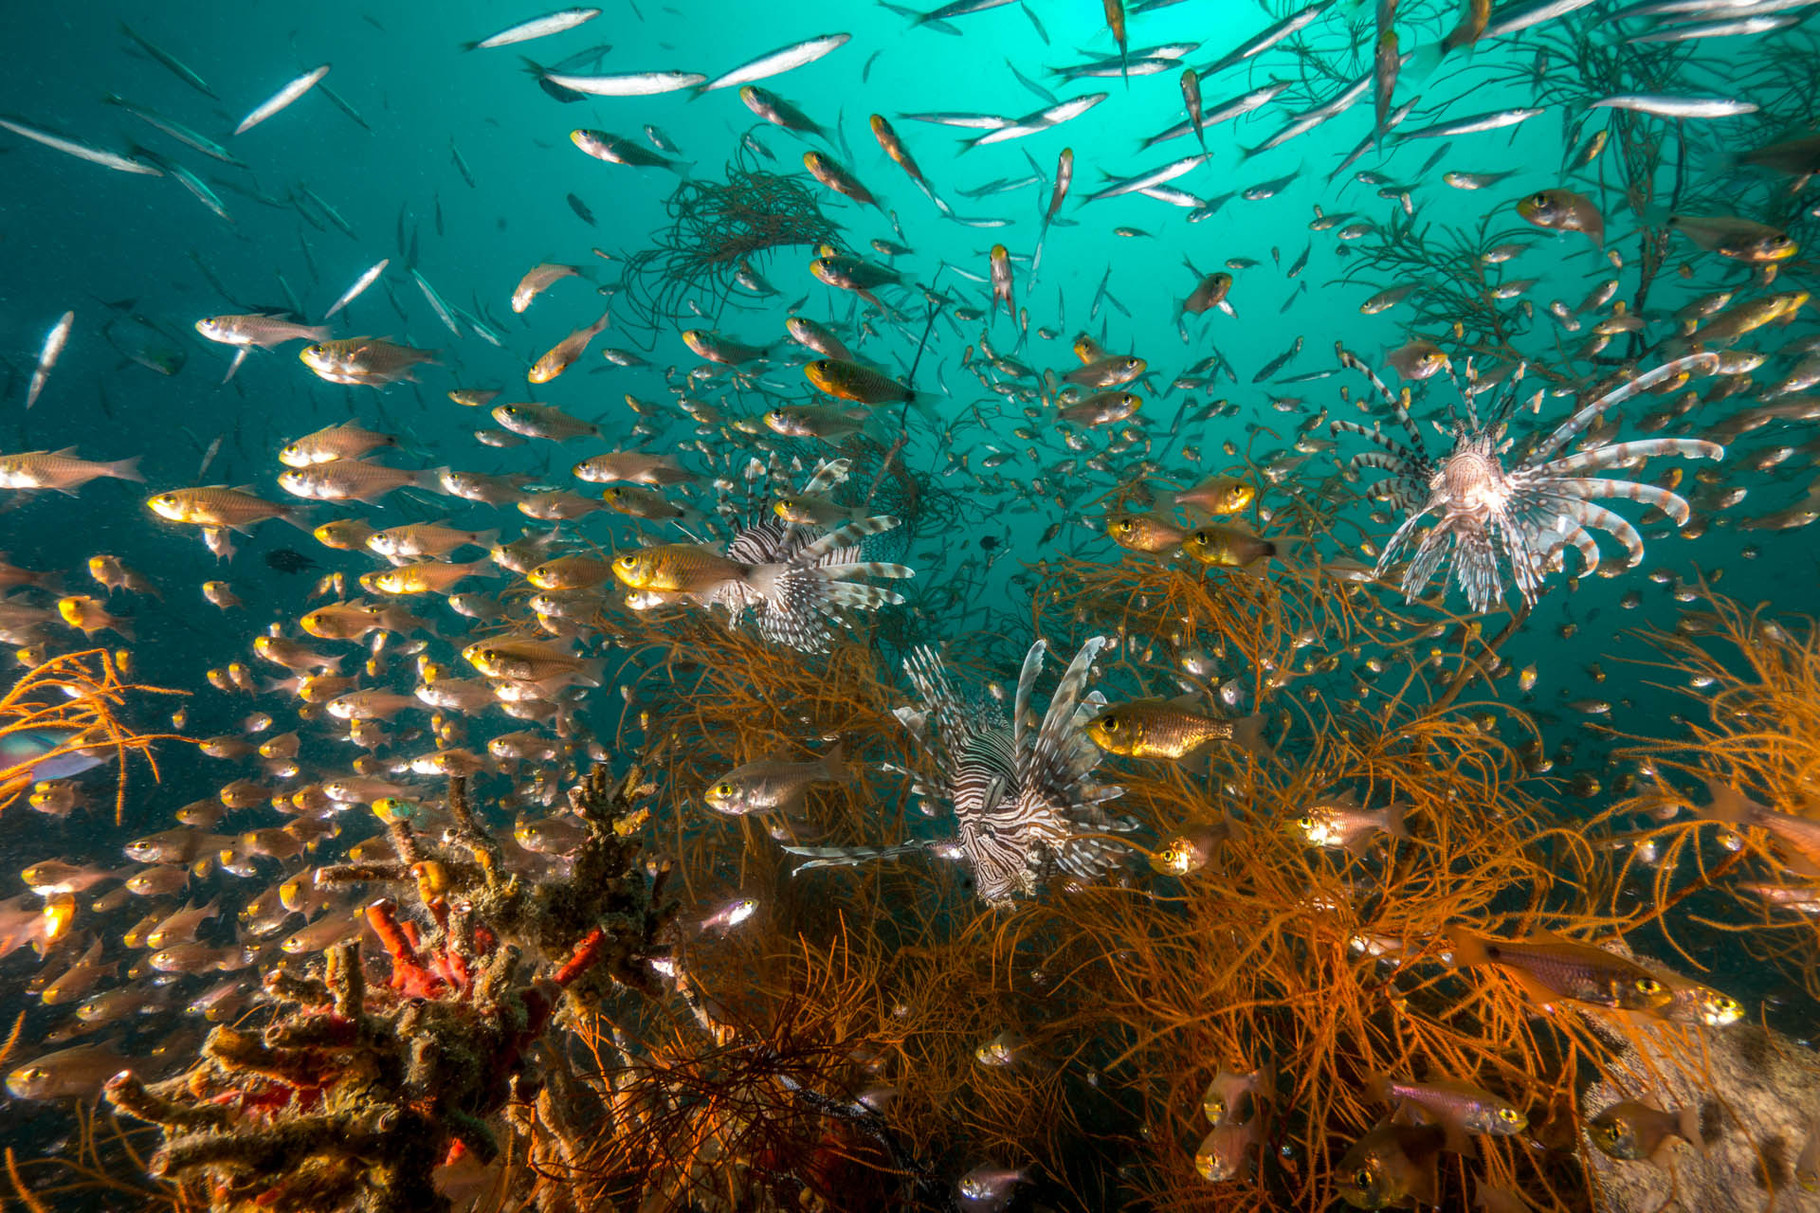 Three hunting lionfishes, schools of glas fishes and juvenile Baracudas at Kyogo Maru Wreck, Coron [Philippines, 2015]